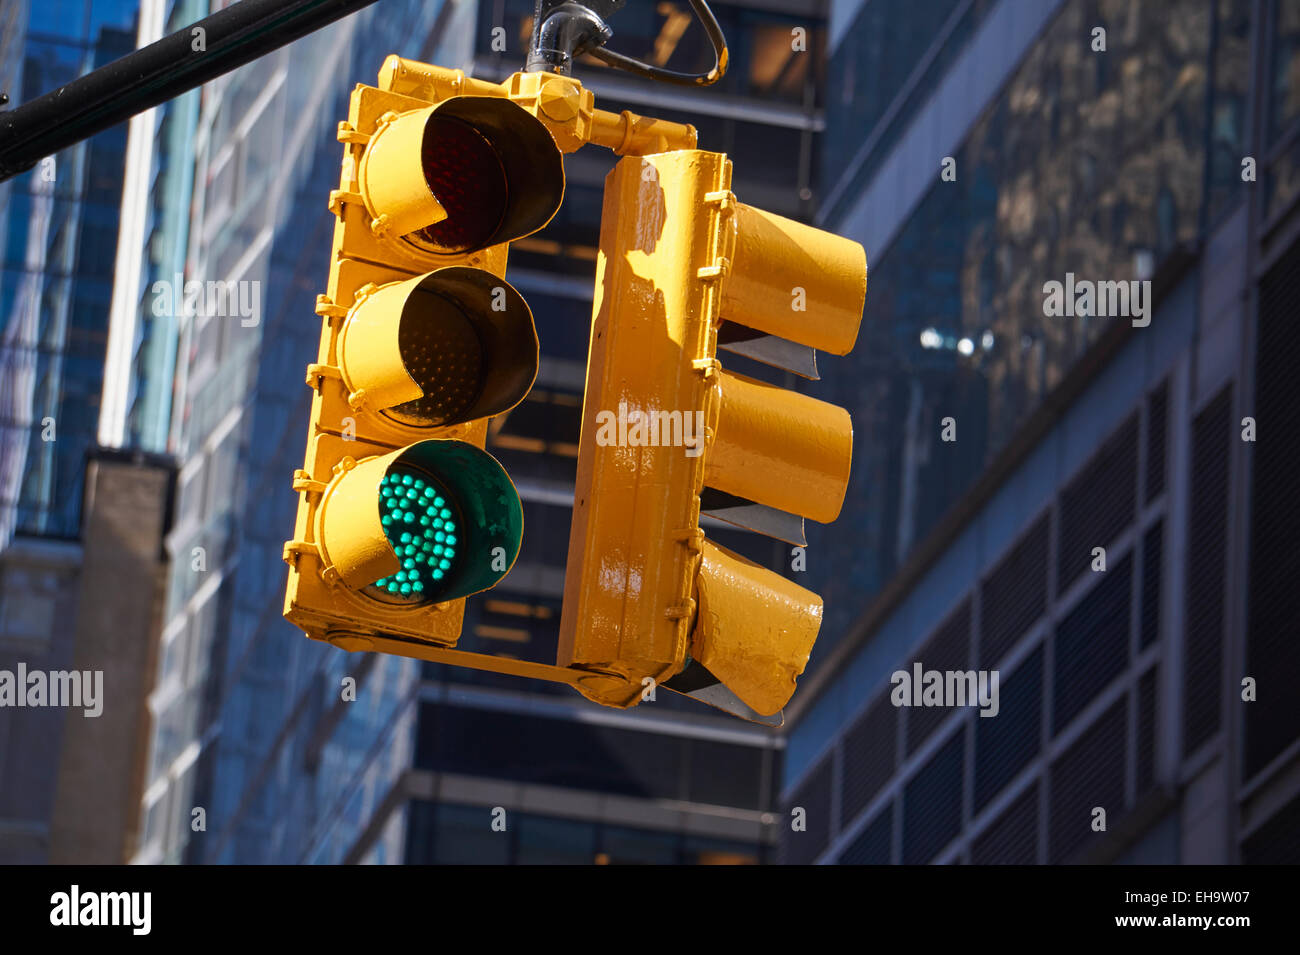 New York City traffic light signal Stock Photo